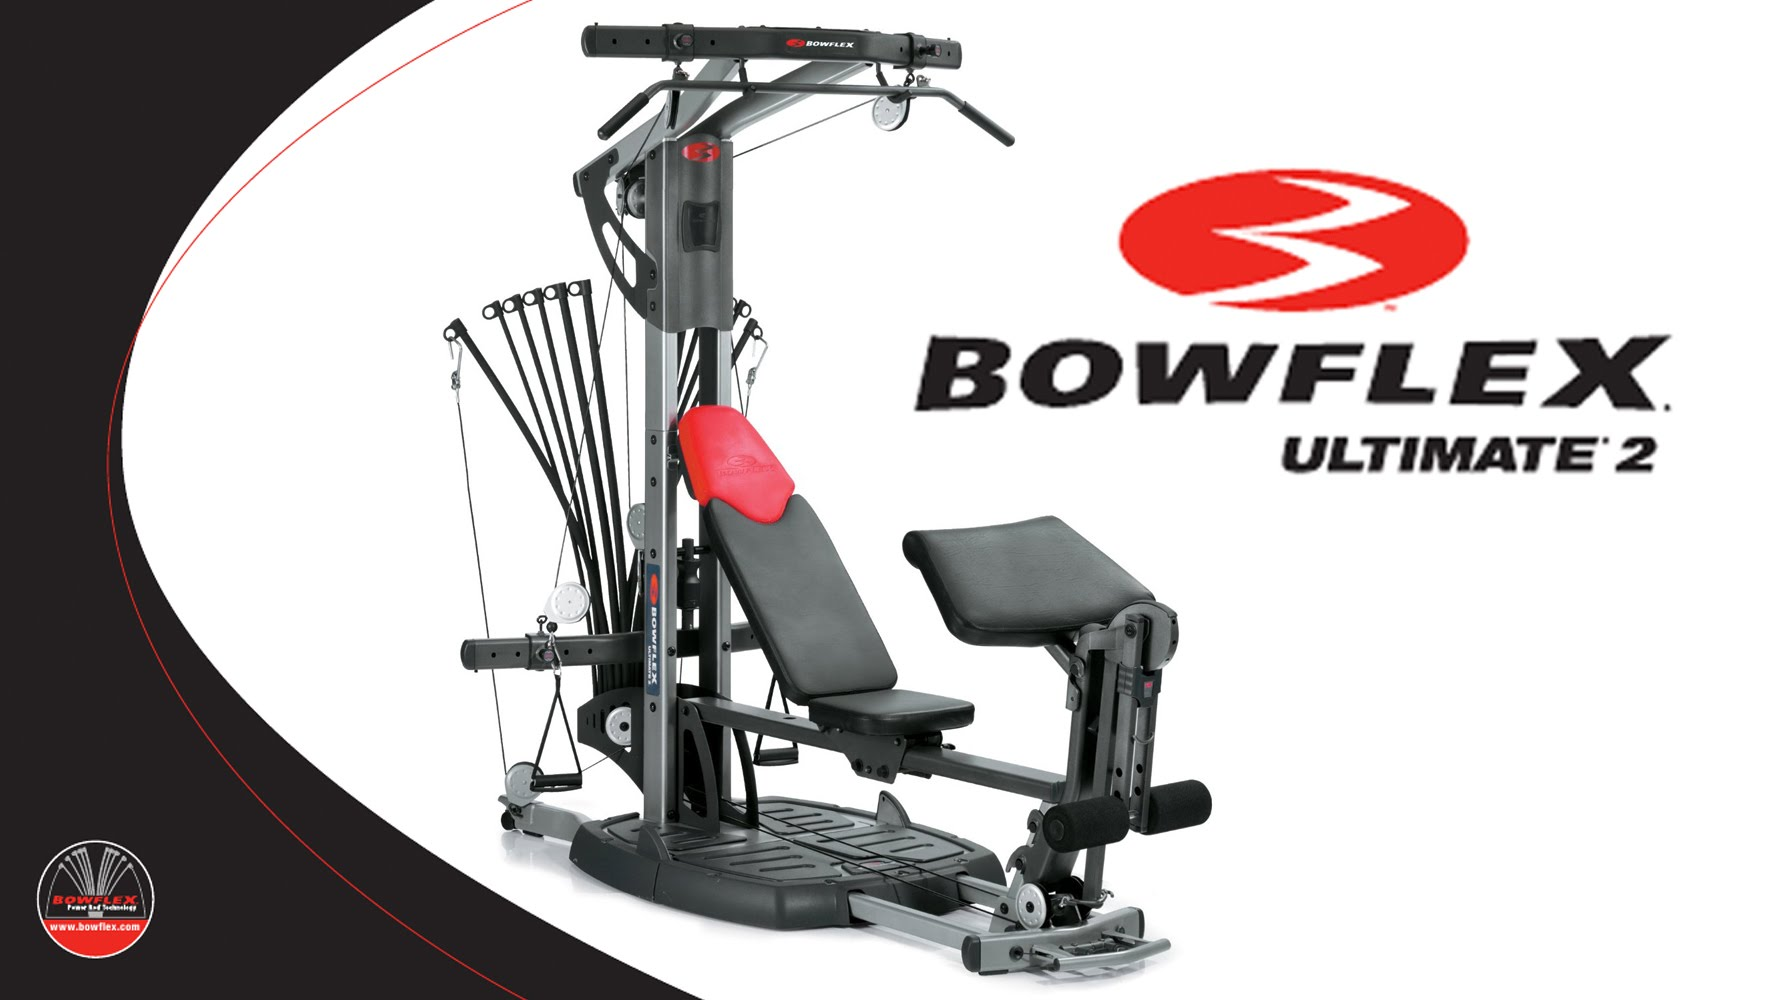 Bowflex Ultimate 2 Home Gym Review - DrenchFit